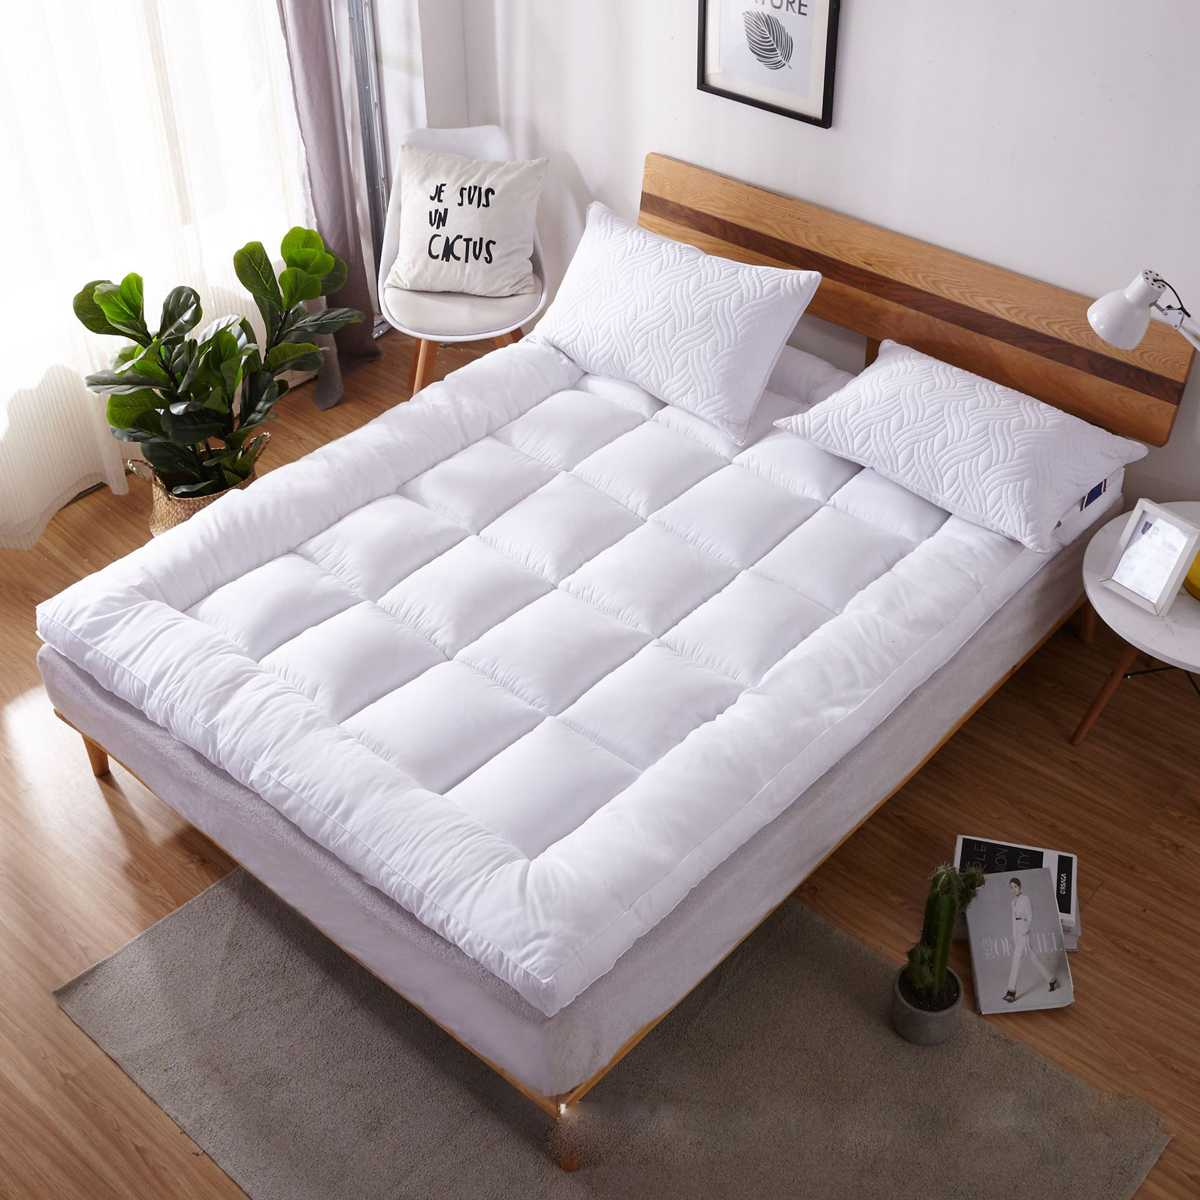 Mattress Pad Queen/King Size Quilted Topper Cover 16